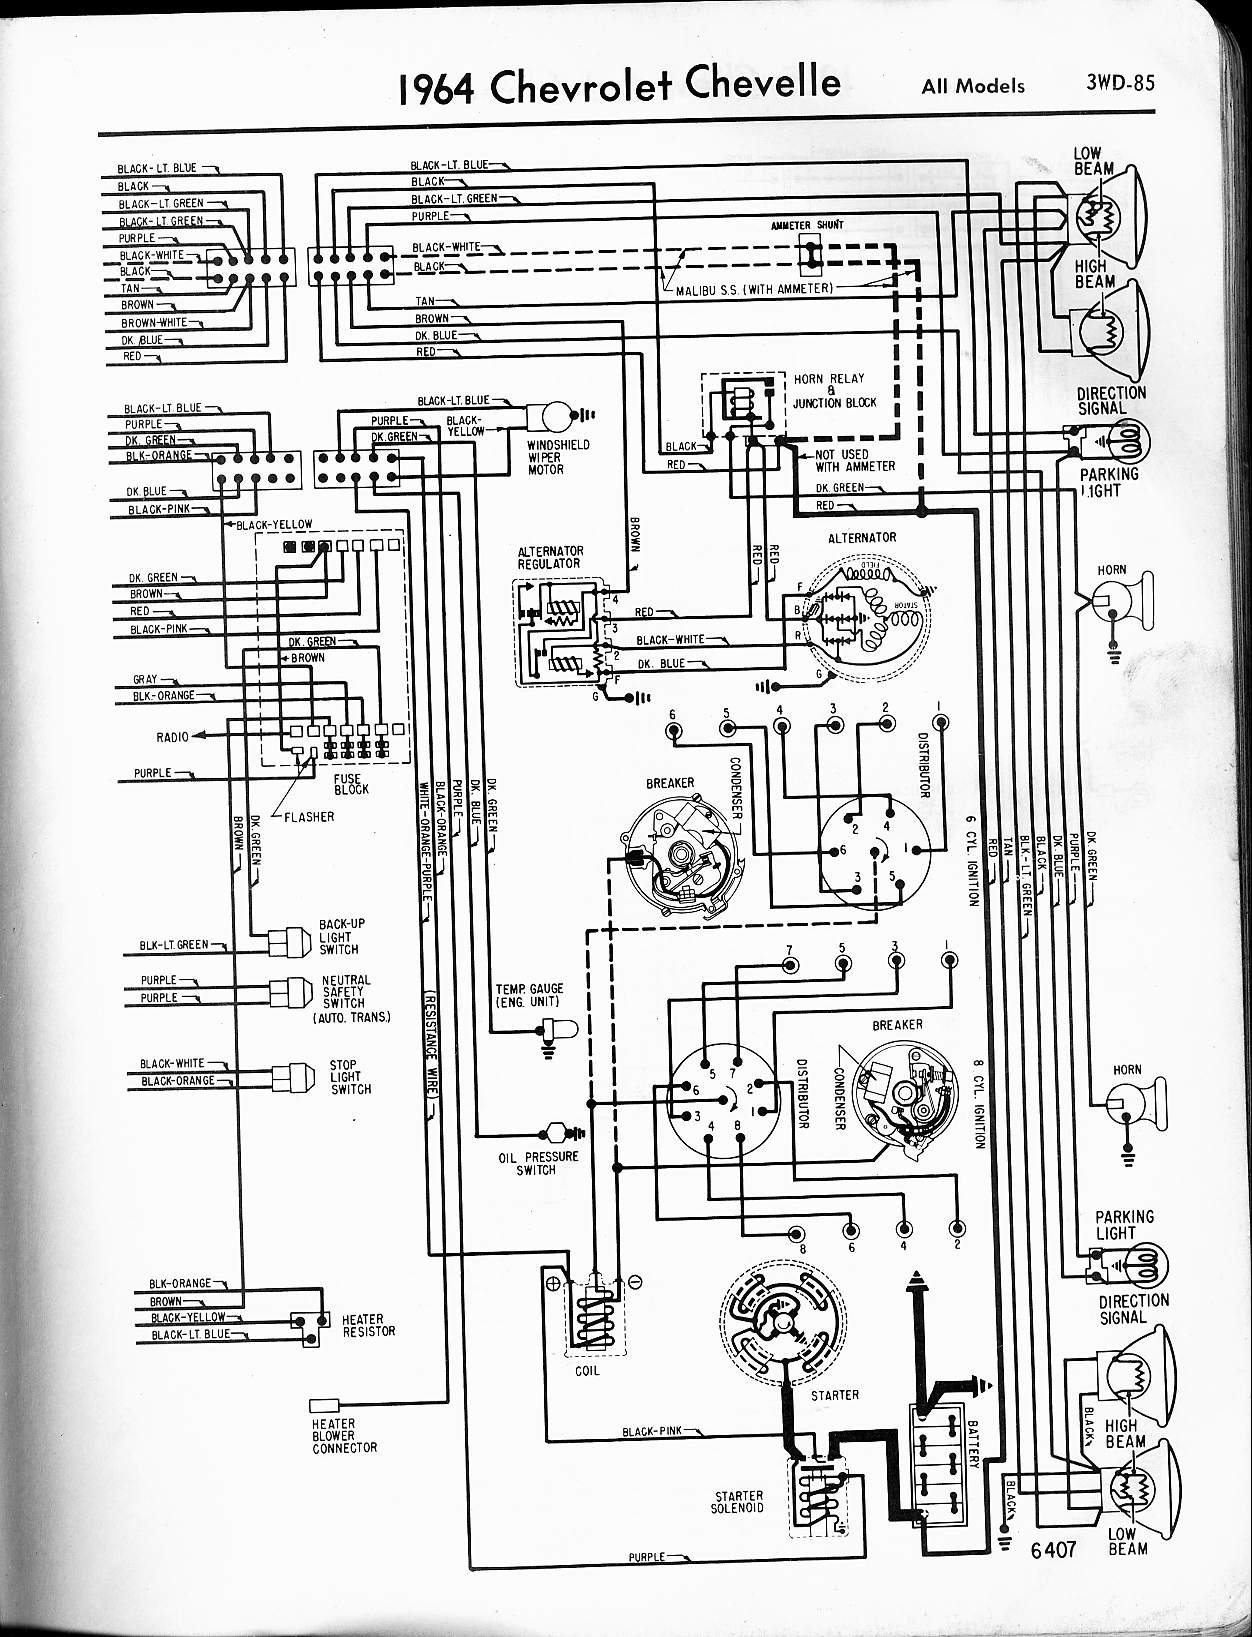 Chevy Malibu Power Window Wiring Diagram | Wiring Diagram on 1957 chevy truck wiring diagram, 1955 chevy wiring diagram, 1957 chevy fuse box diagram,